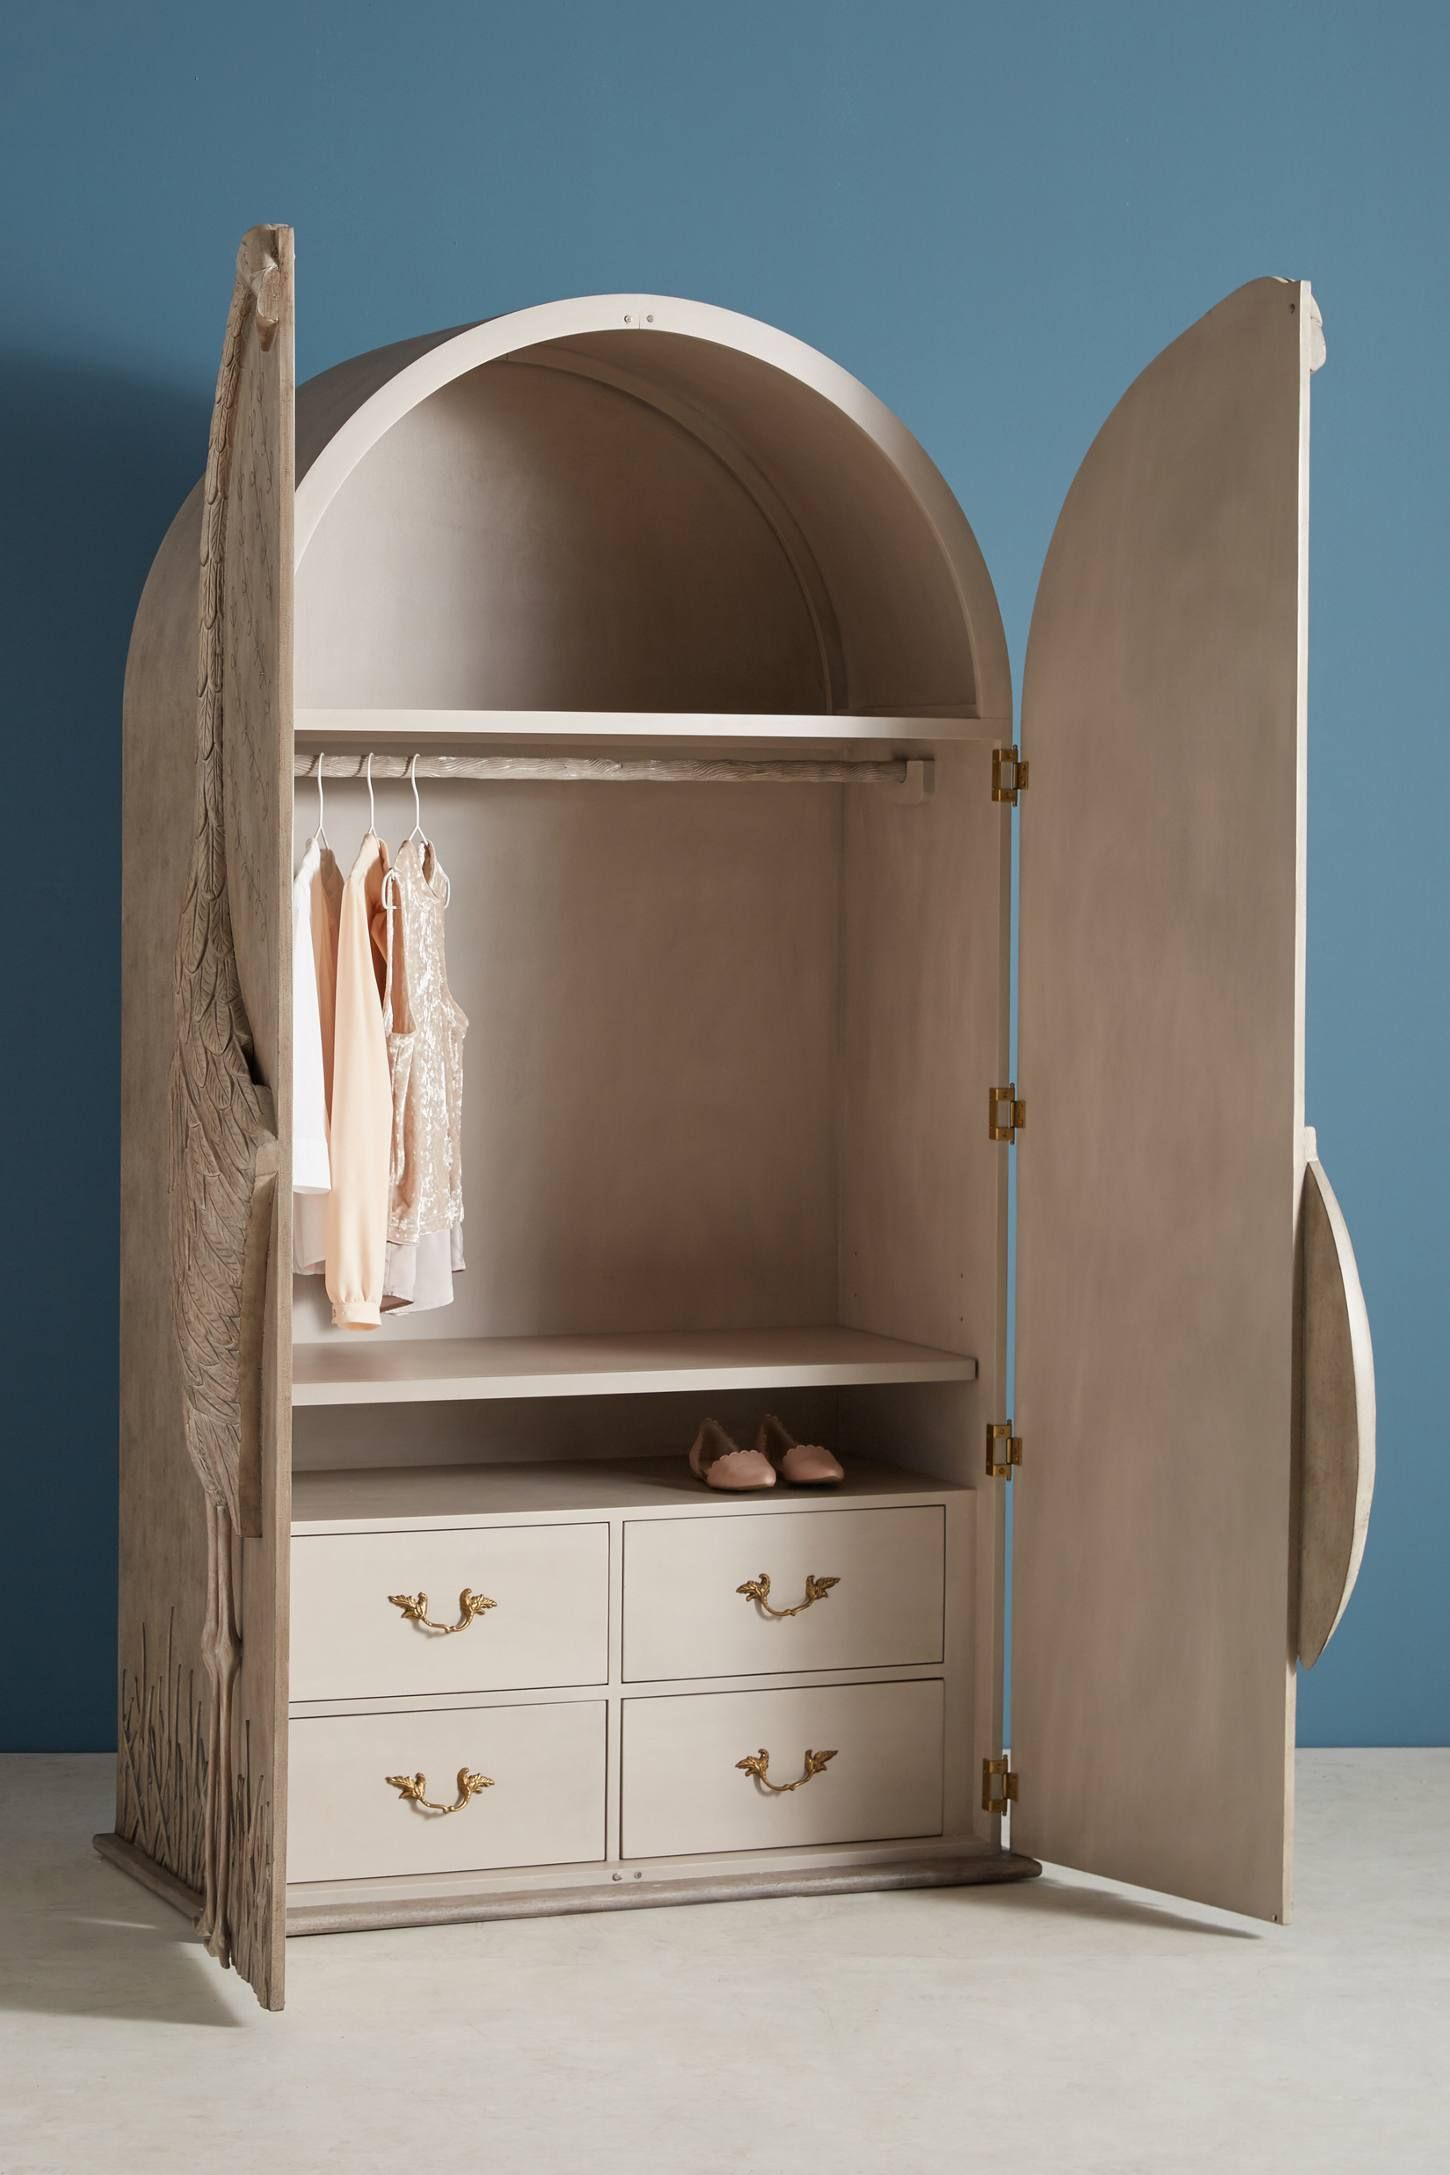 Apartment Anthropologie Armoire - 0ff05bd26b8a3ba2f54ba986c2b69976_Beautiful Apartment Anthropologie Armoire - 0ff05bd26b8a3ba2f54ba986c2b69976  HD_788475.jpg